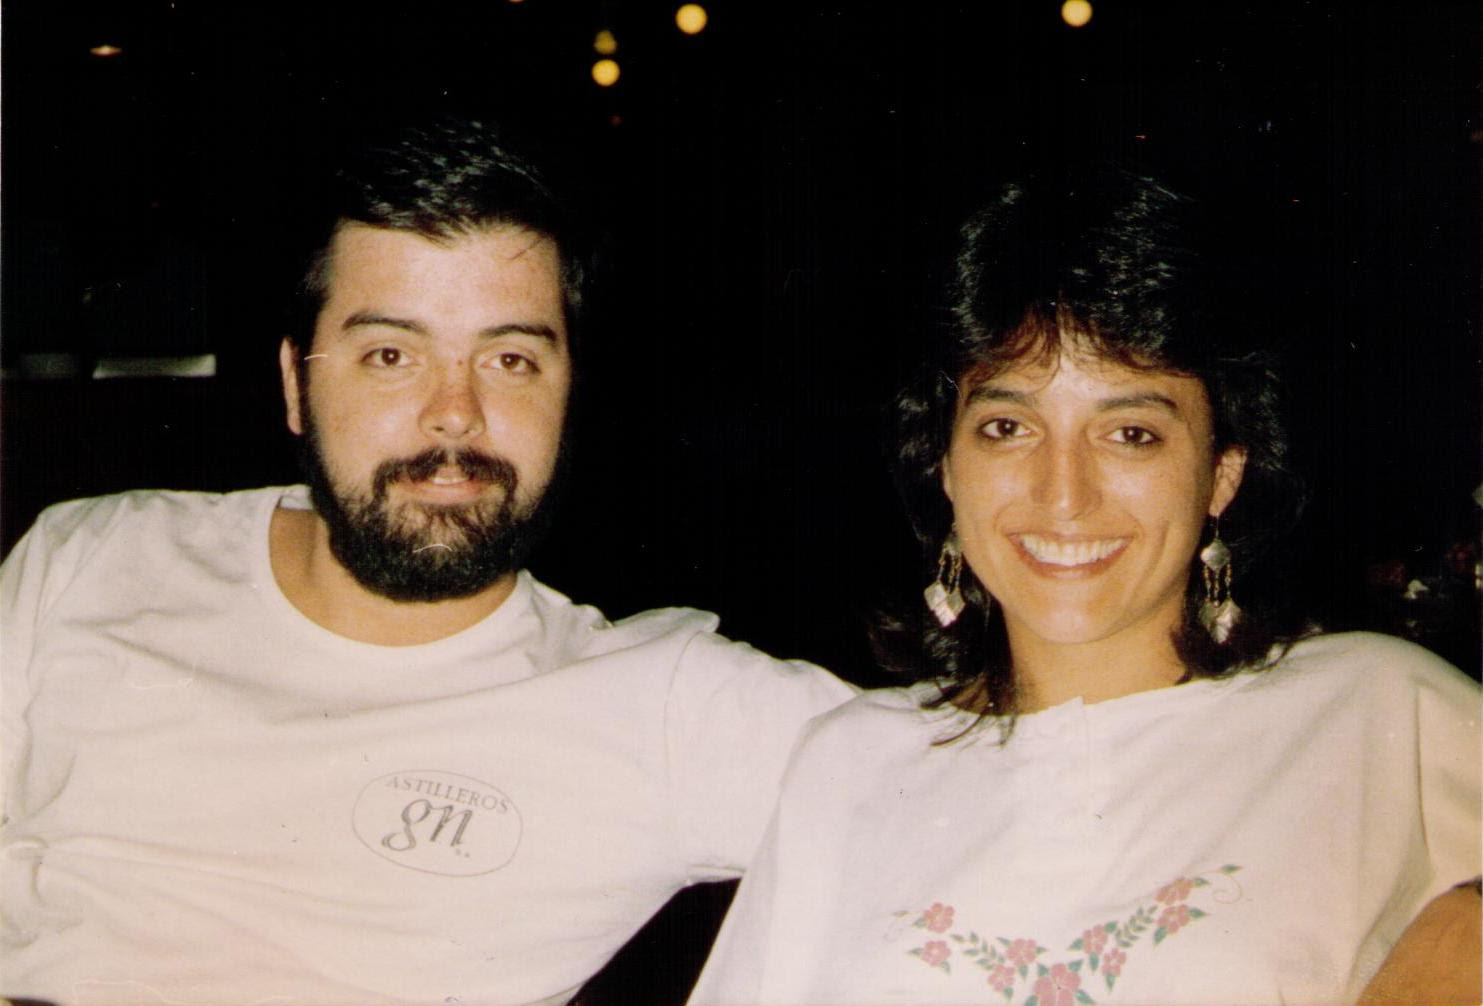 Me and Gaby in 1991